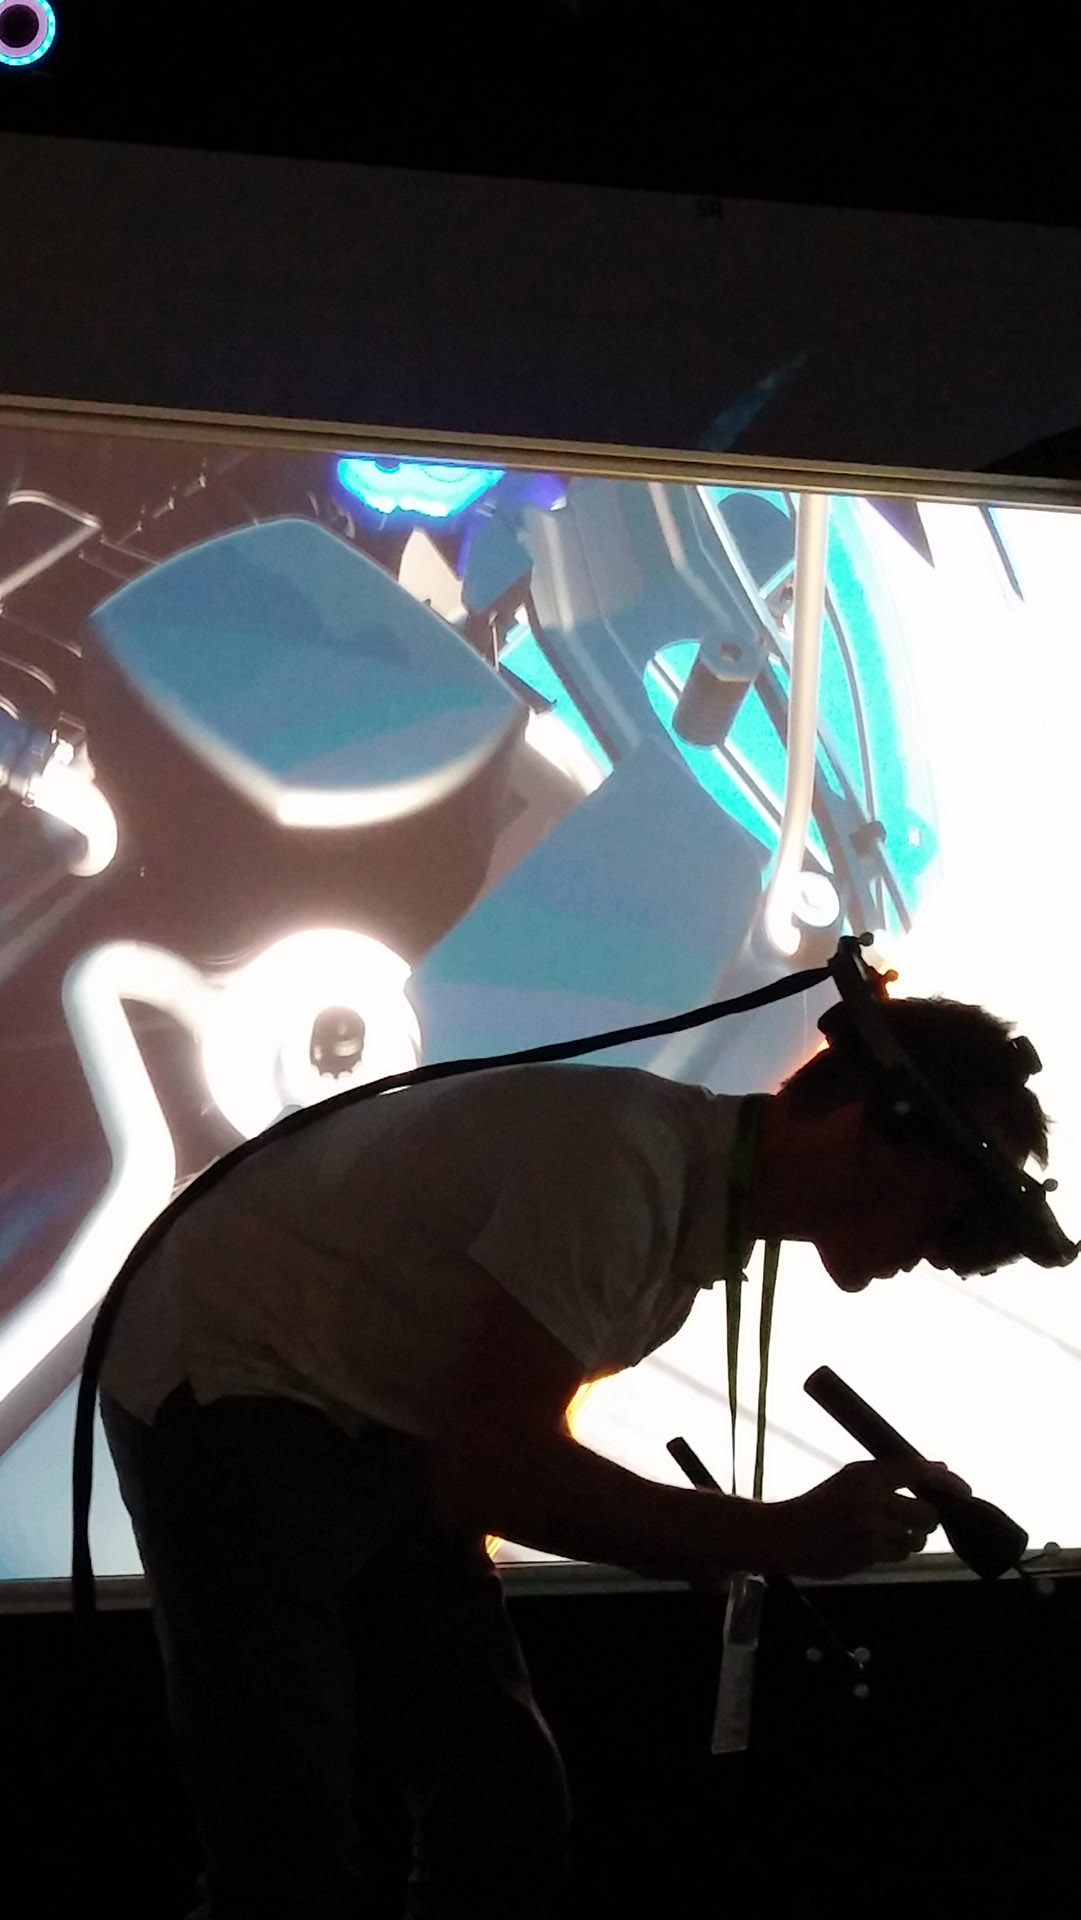 VR immersed user inspecting rendered automotive model